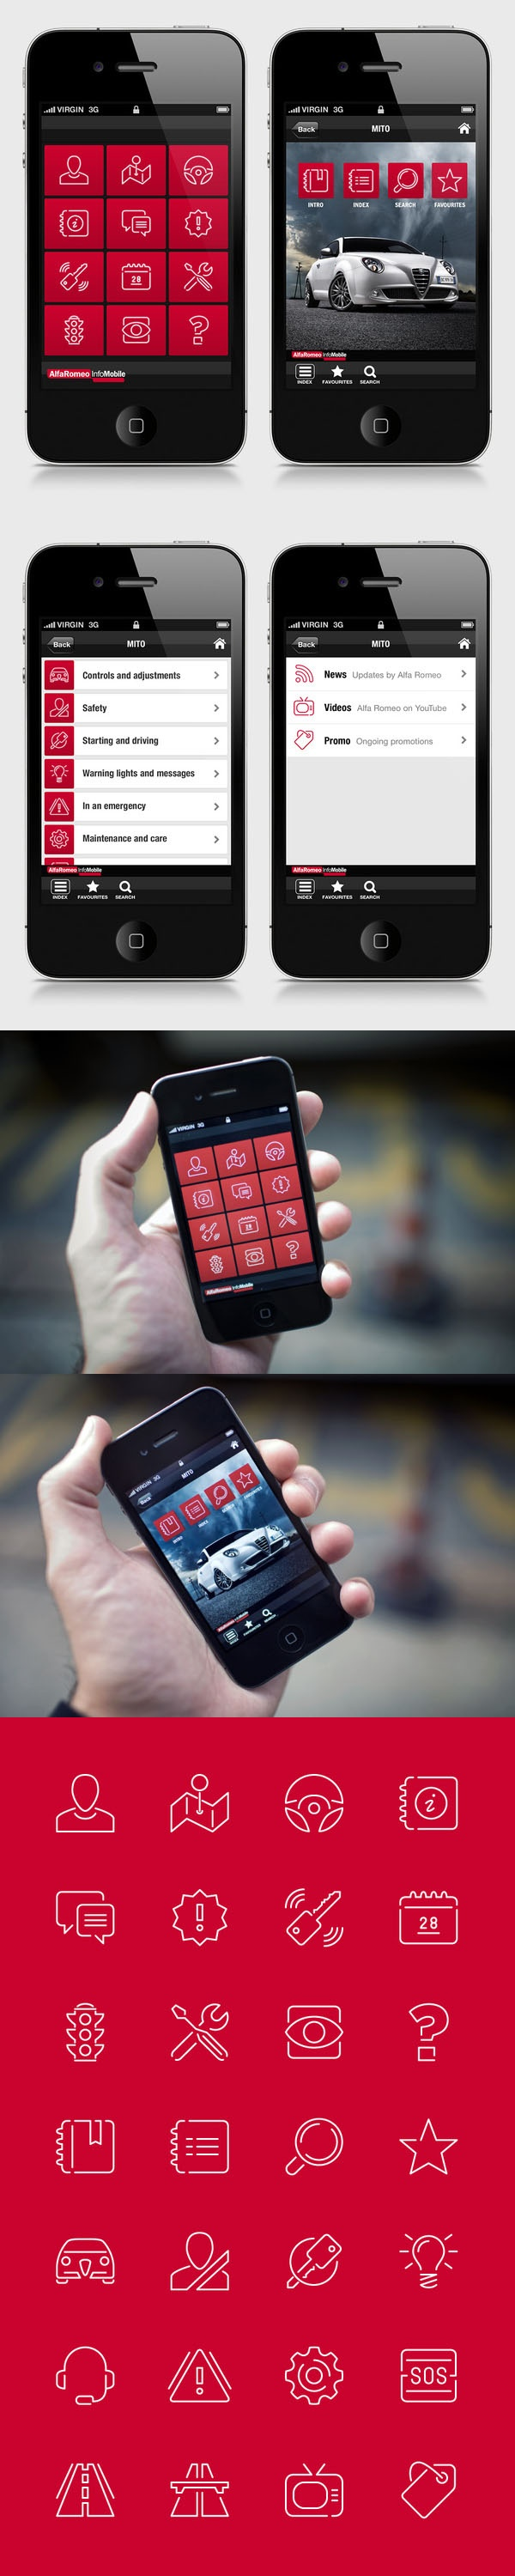 Alfa Romeo Mobile - Pictograms by Stefano Vetere, via Behance *** Icons set redesign proposal done for Alfa Romeo Info Mobile application, for iOS and Android.